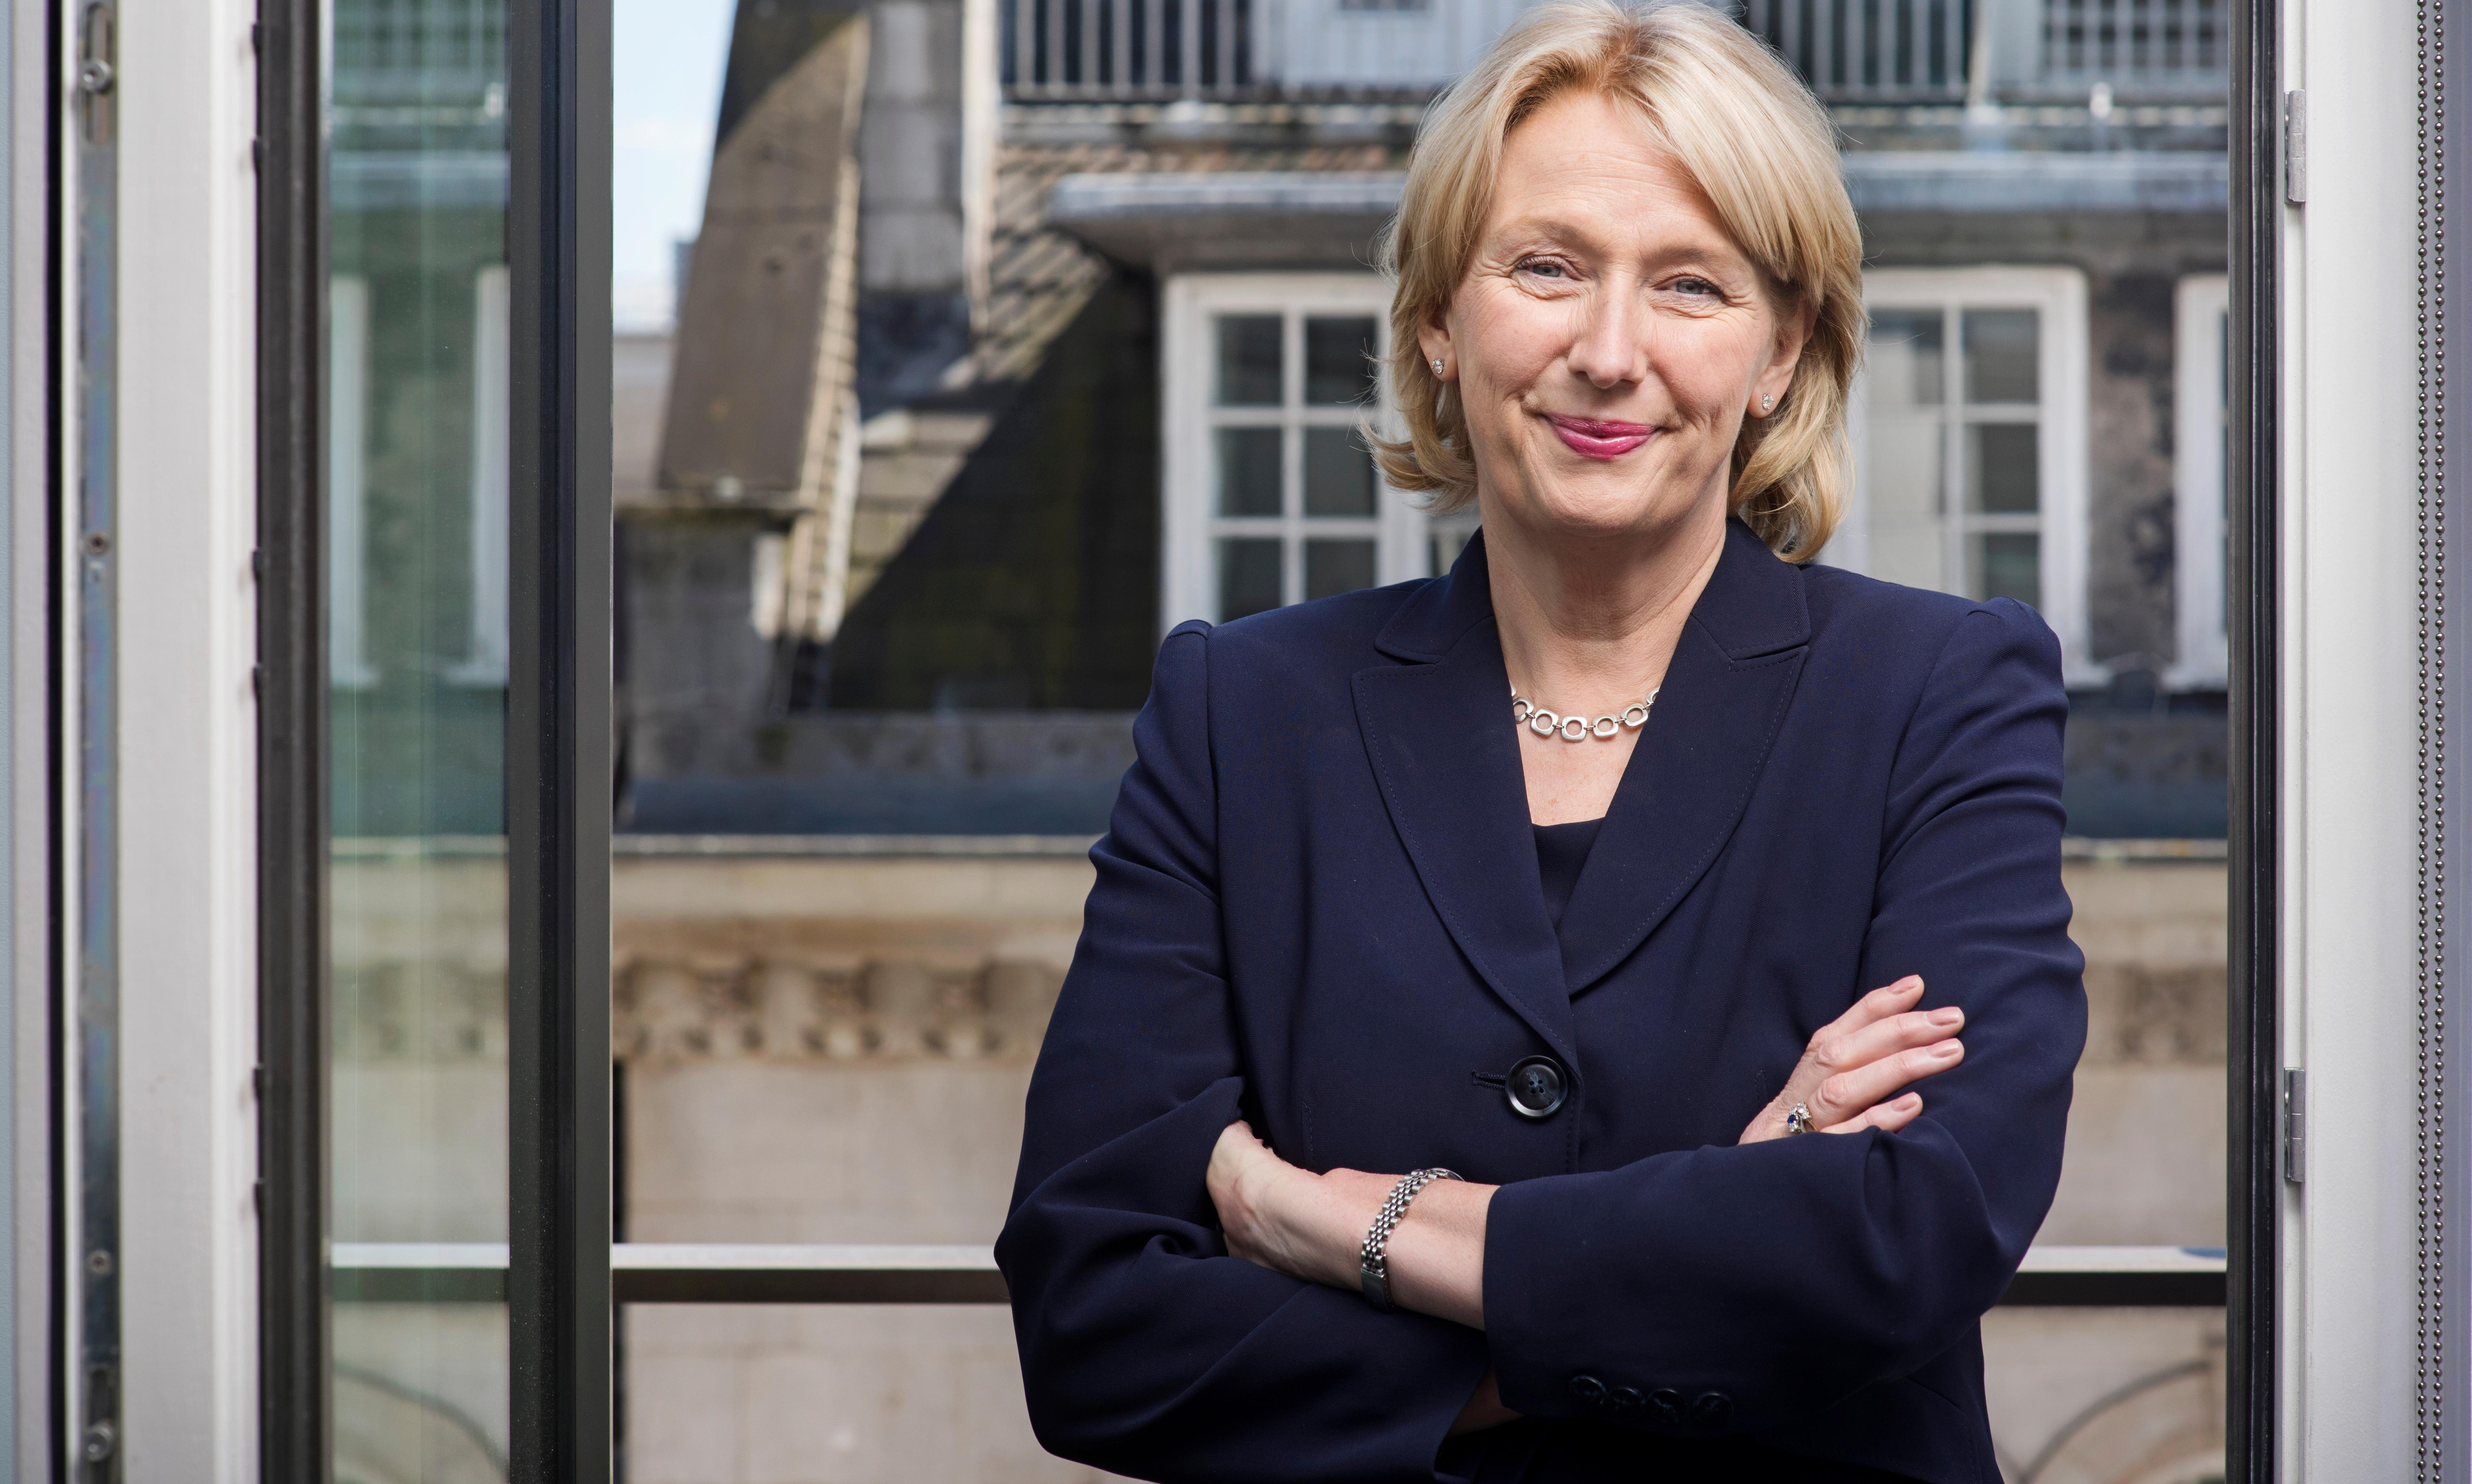 Ex-Virgin Money chief joins cultural shake-up at Lloyd's of London